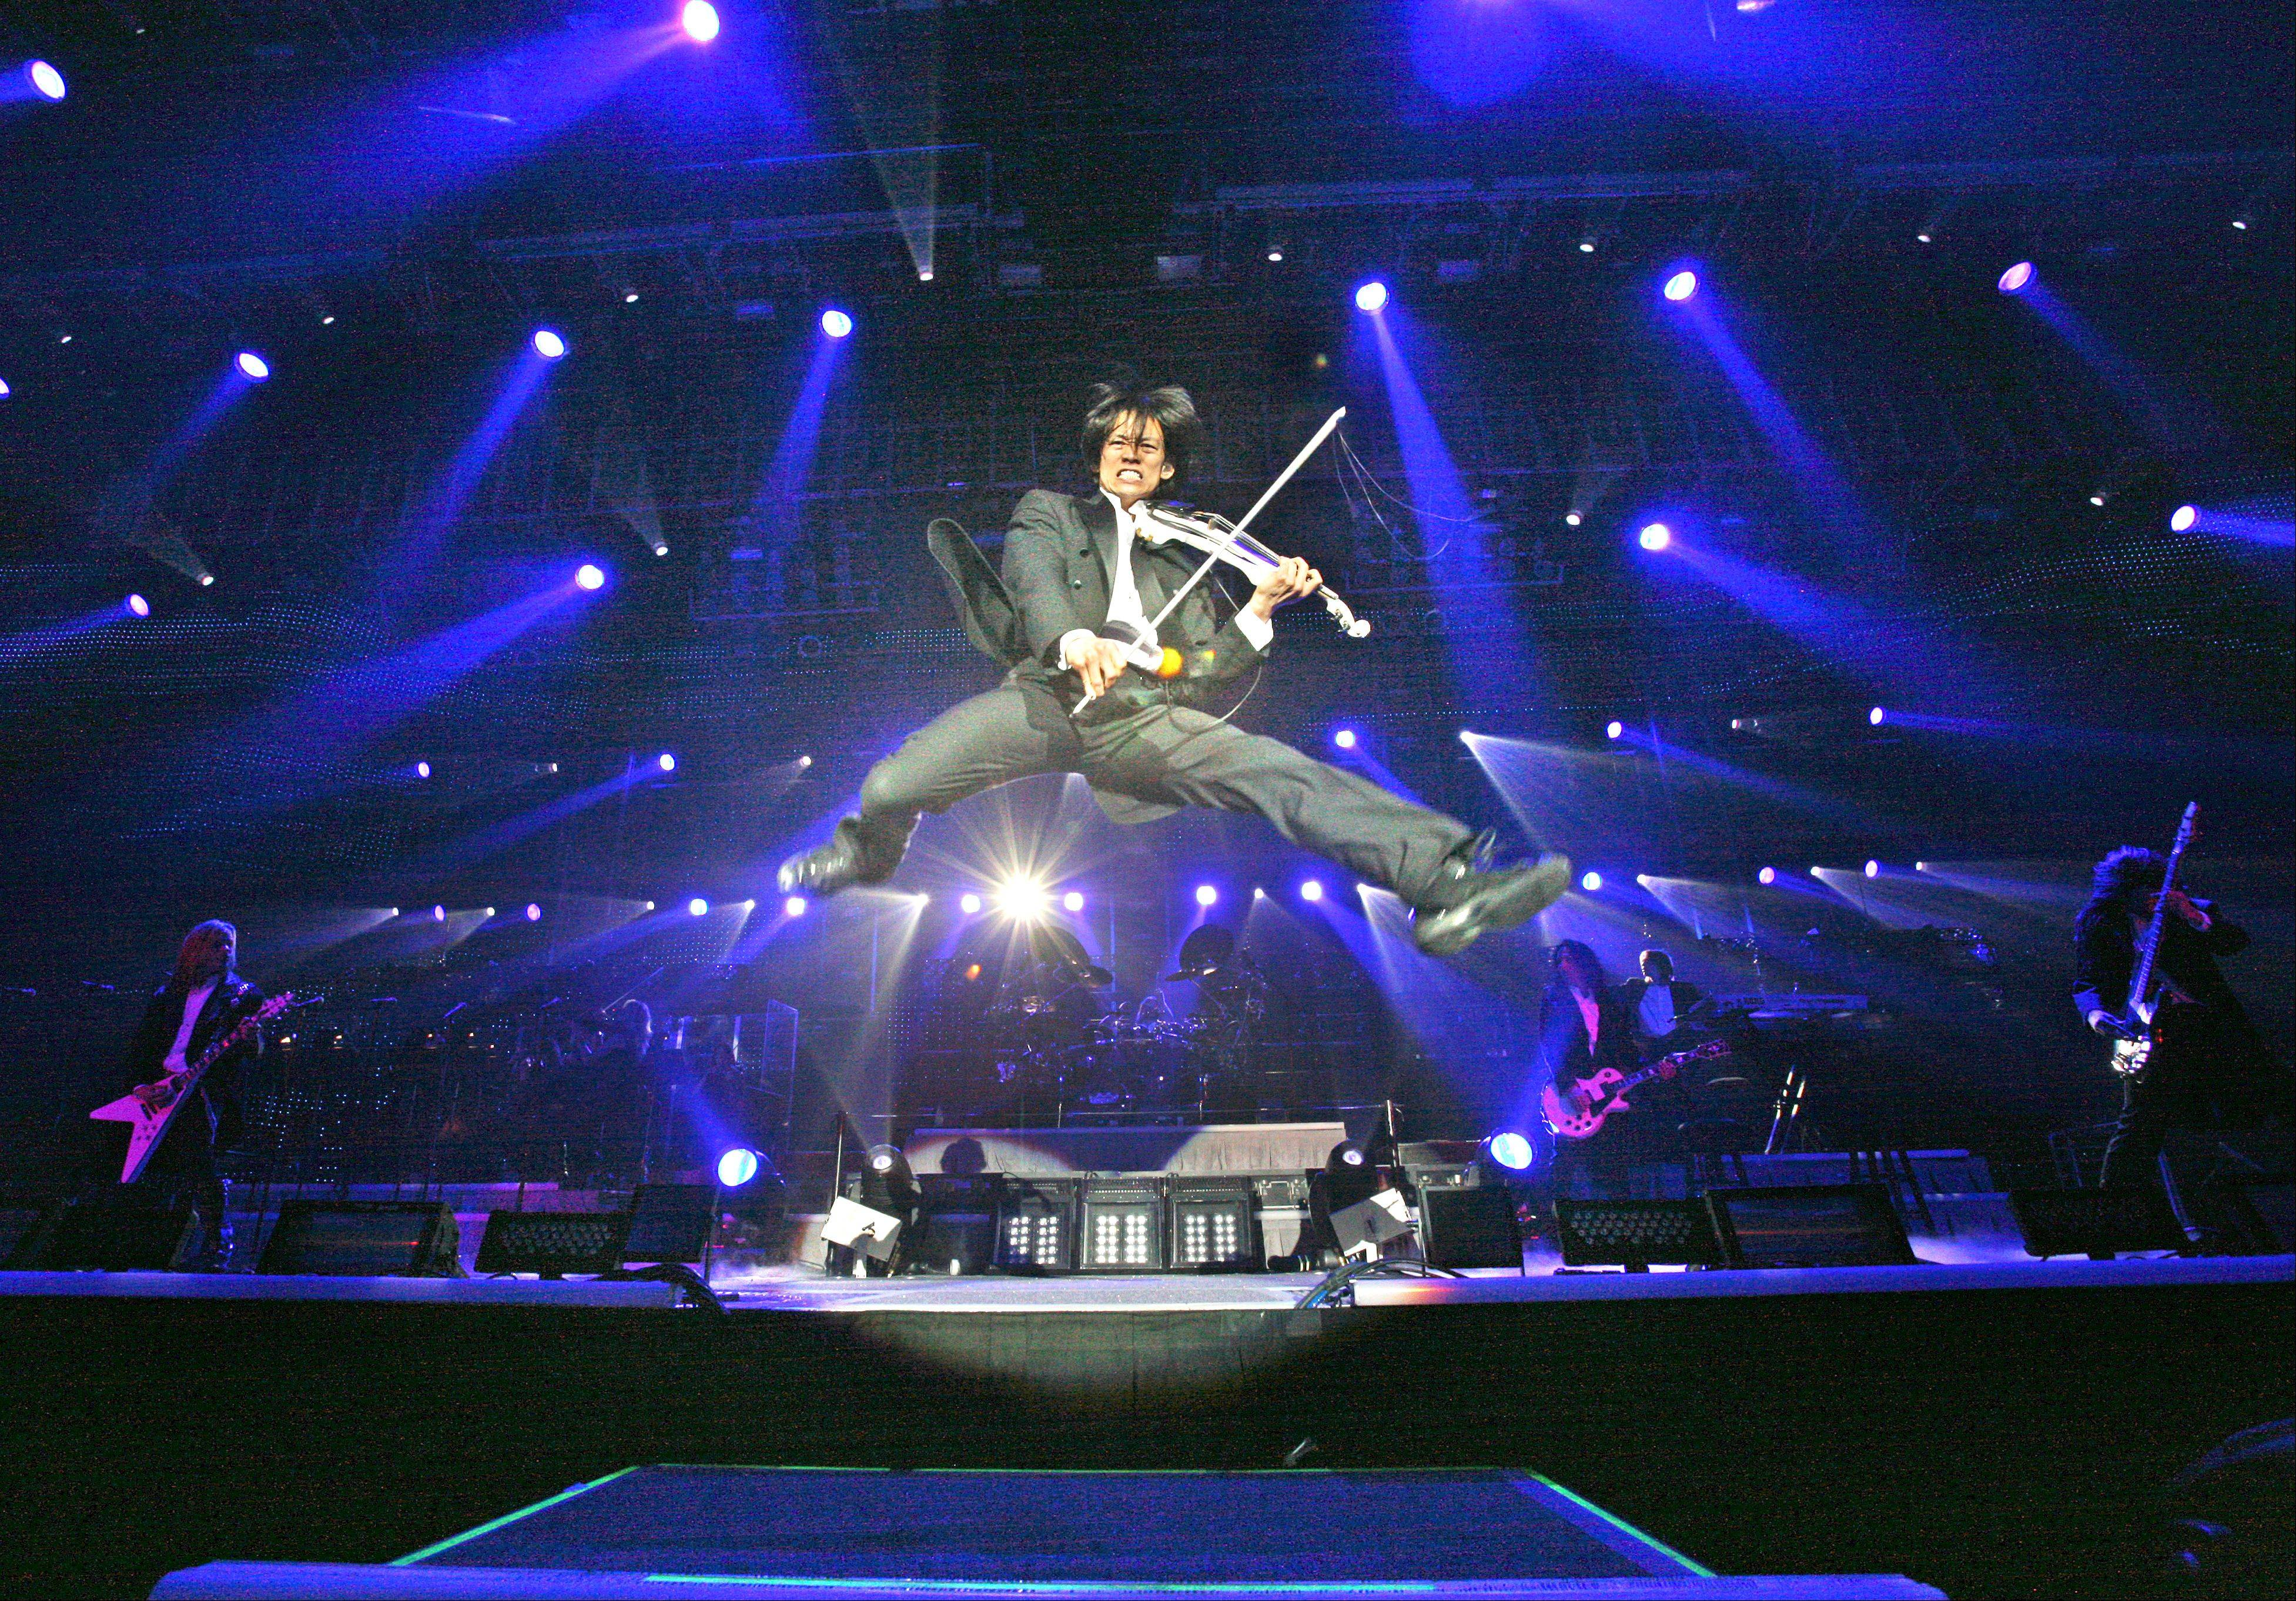 Roddy Chong, of Schaumburg, leaps into the air while playing rock violin with the Trans-Siberian Orchestra. The TSO will do two shows this Saturday at the Allstate Arena.